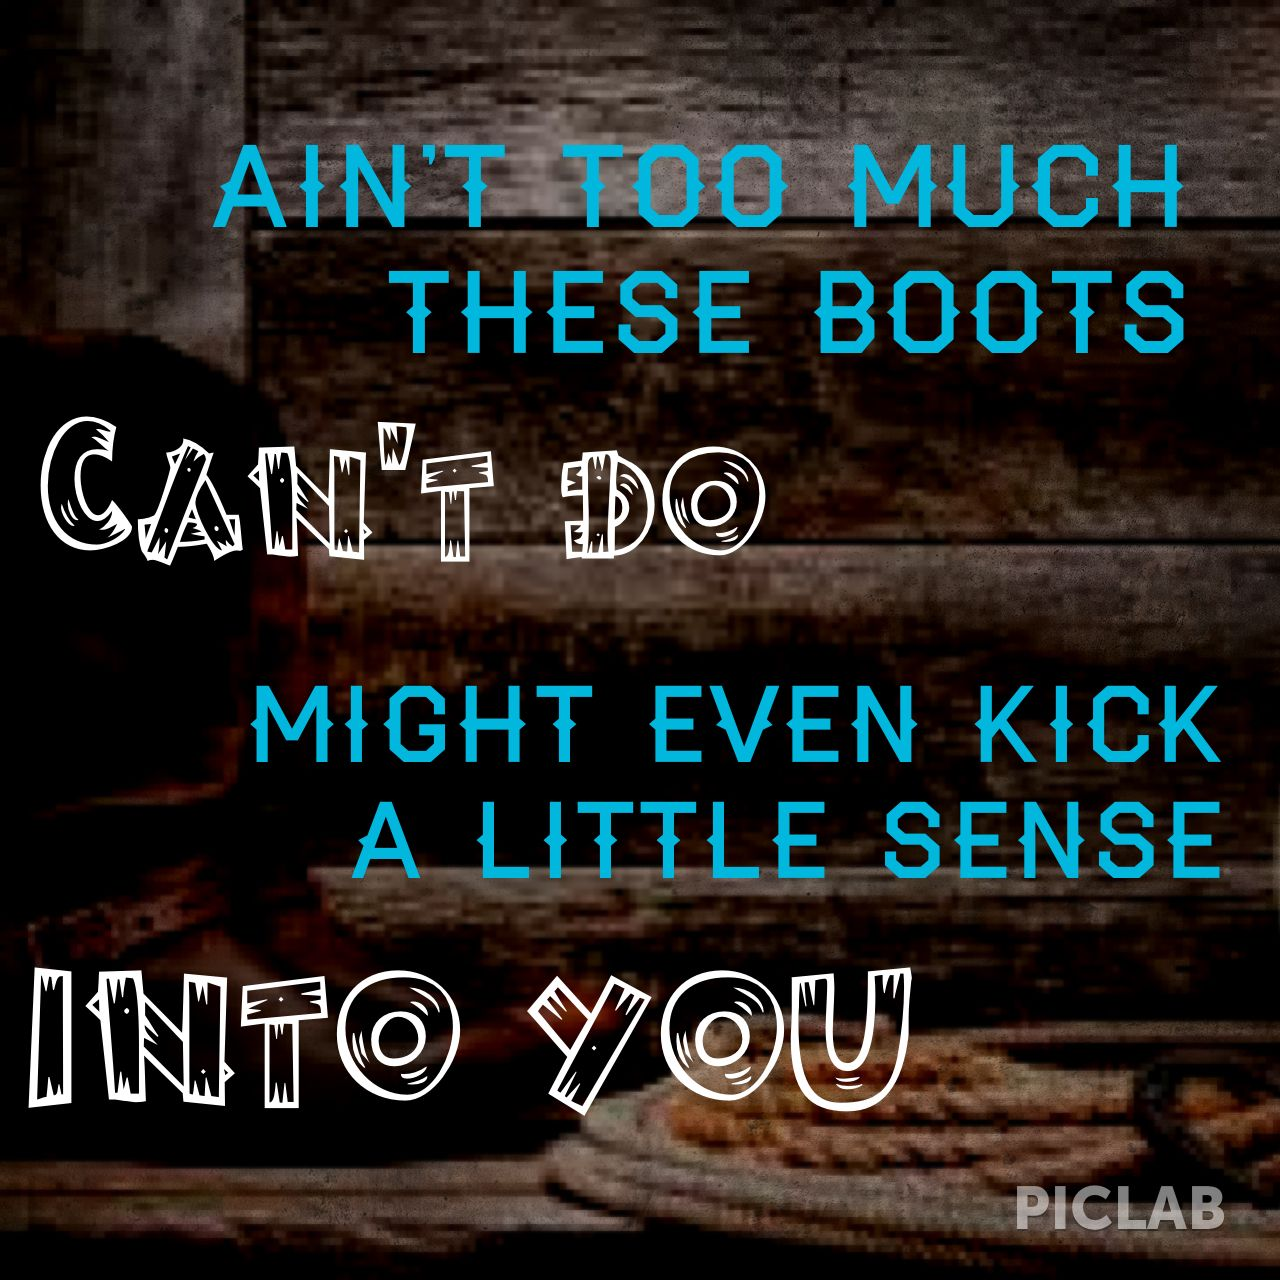 Hillbilly Shoes- Montgomery Gentry  My life motto